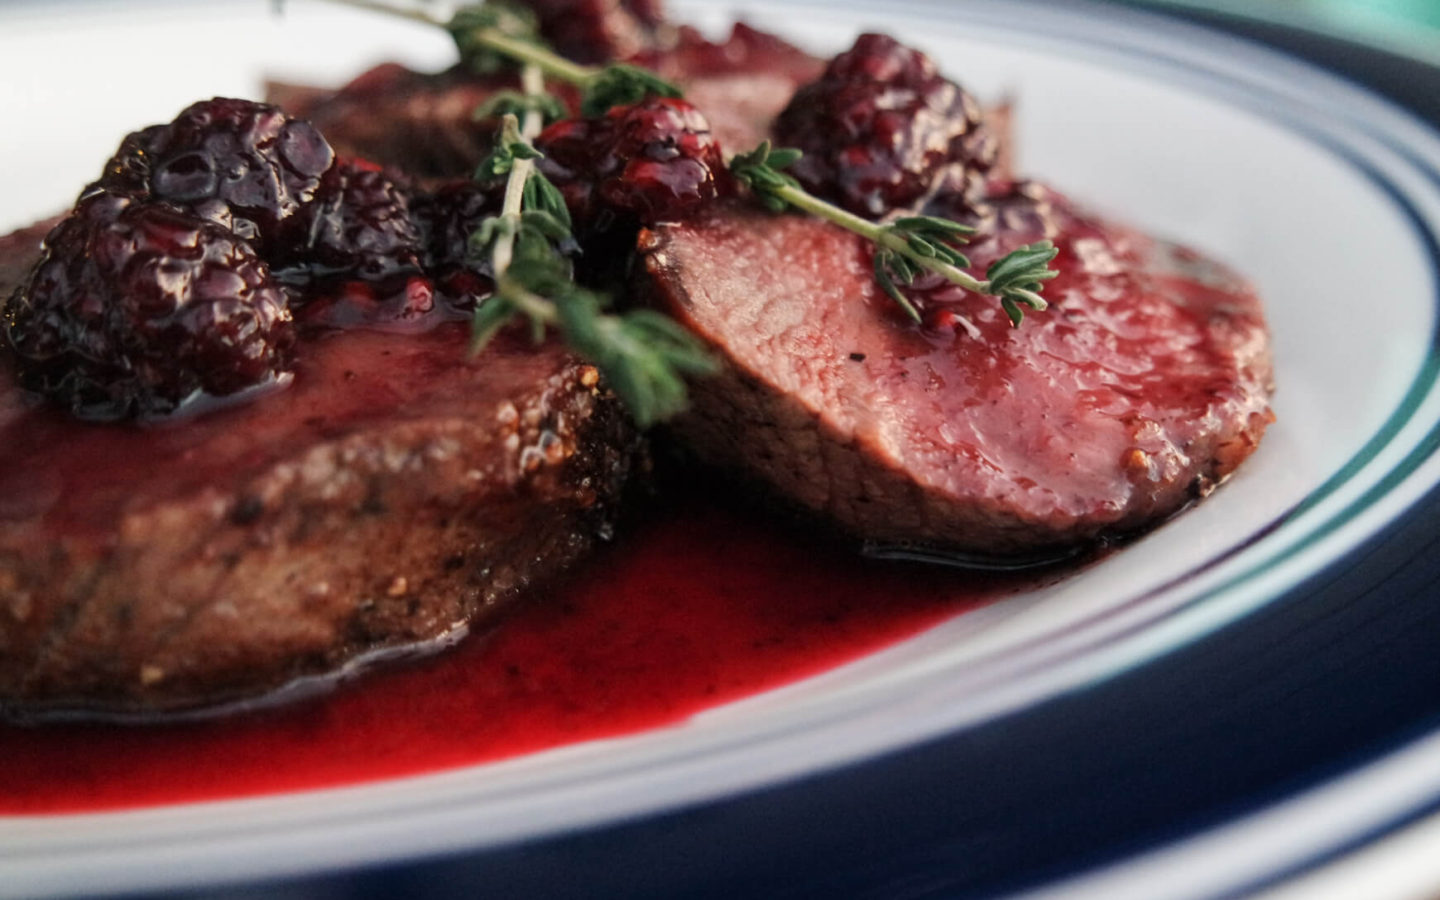 #VersatileVenison – Packed with flavour just like nature intended